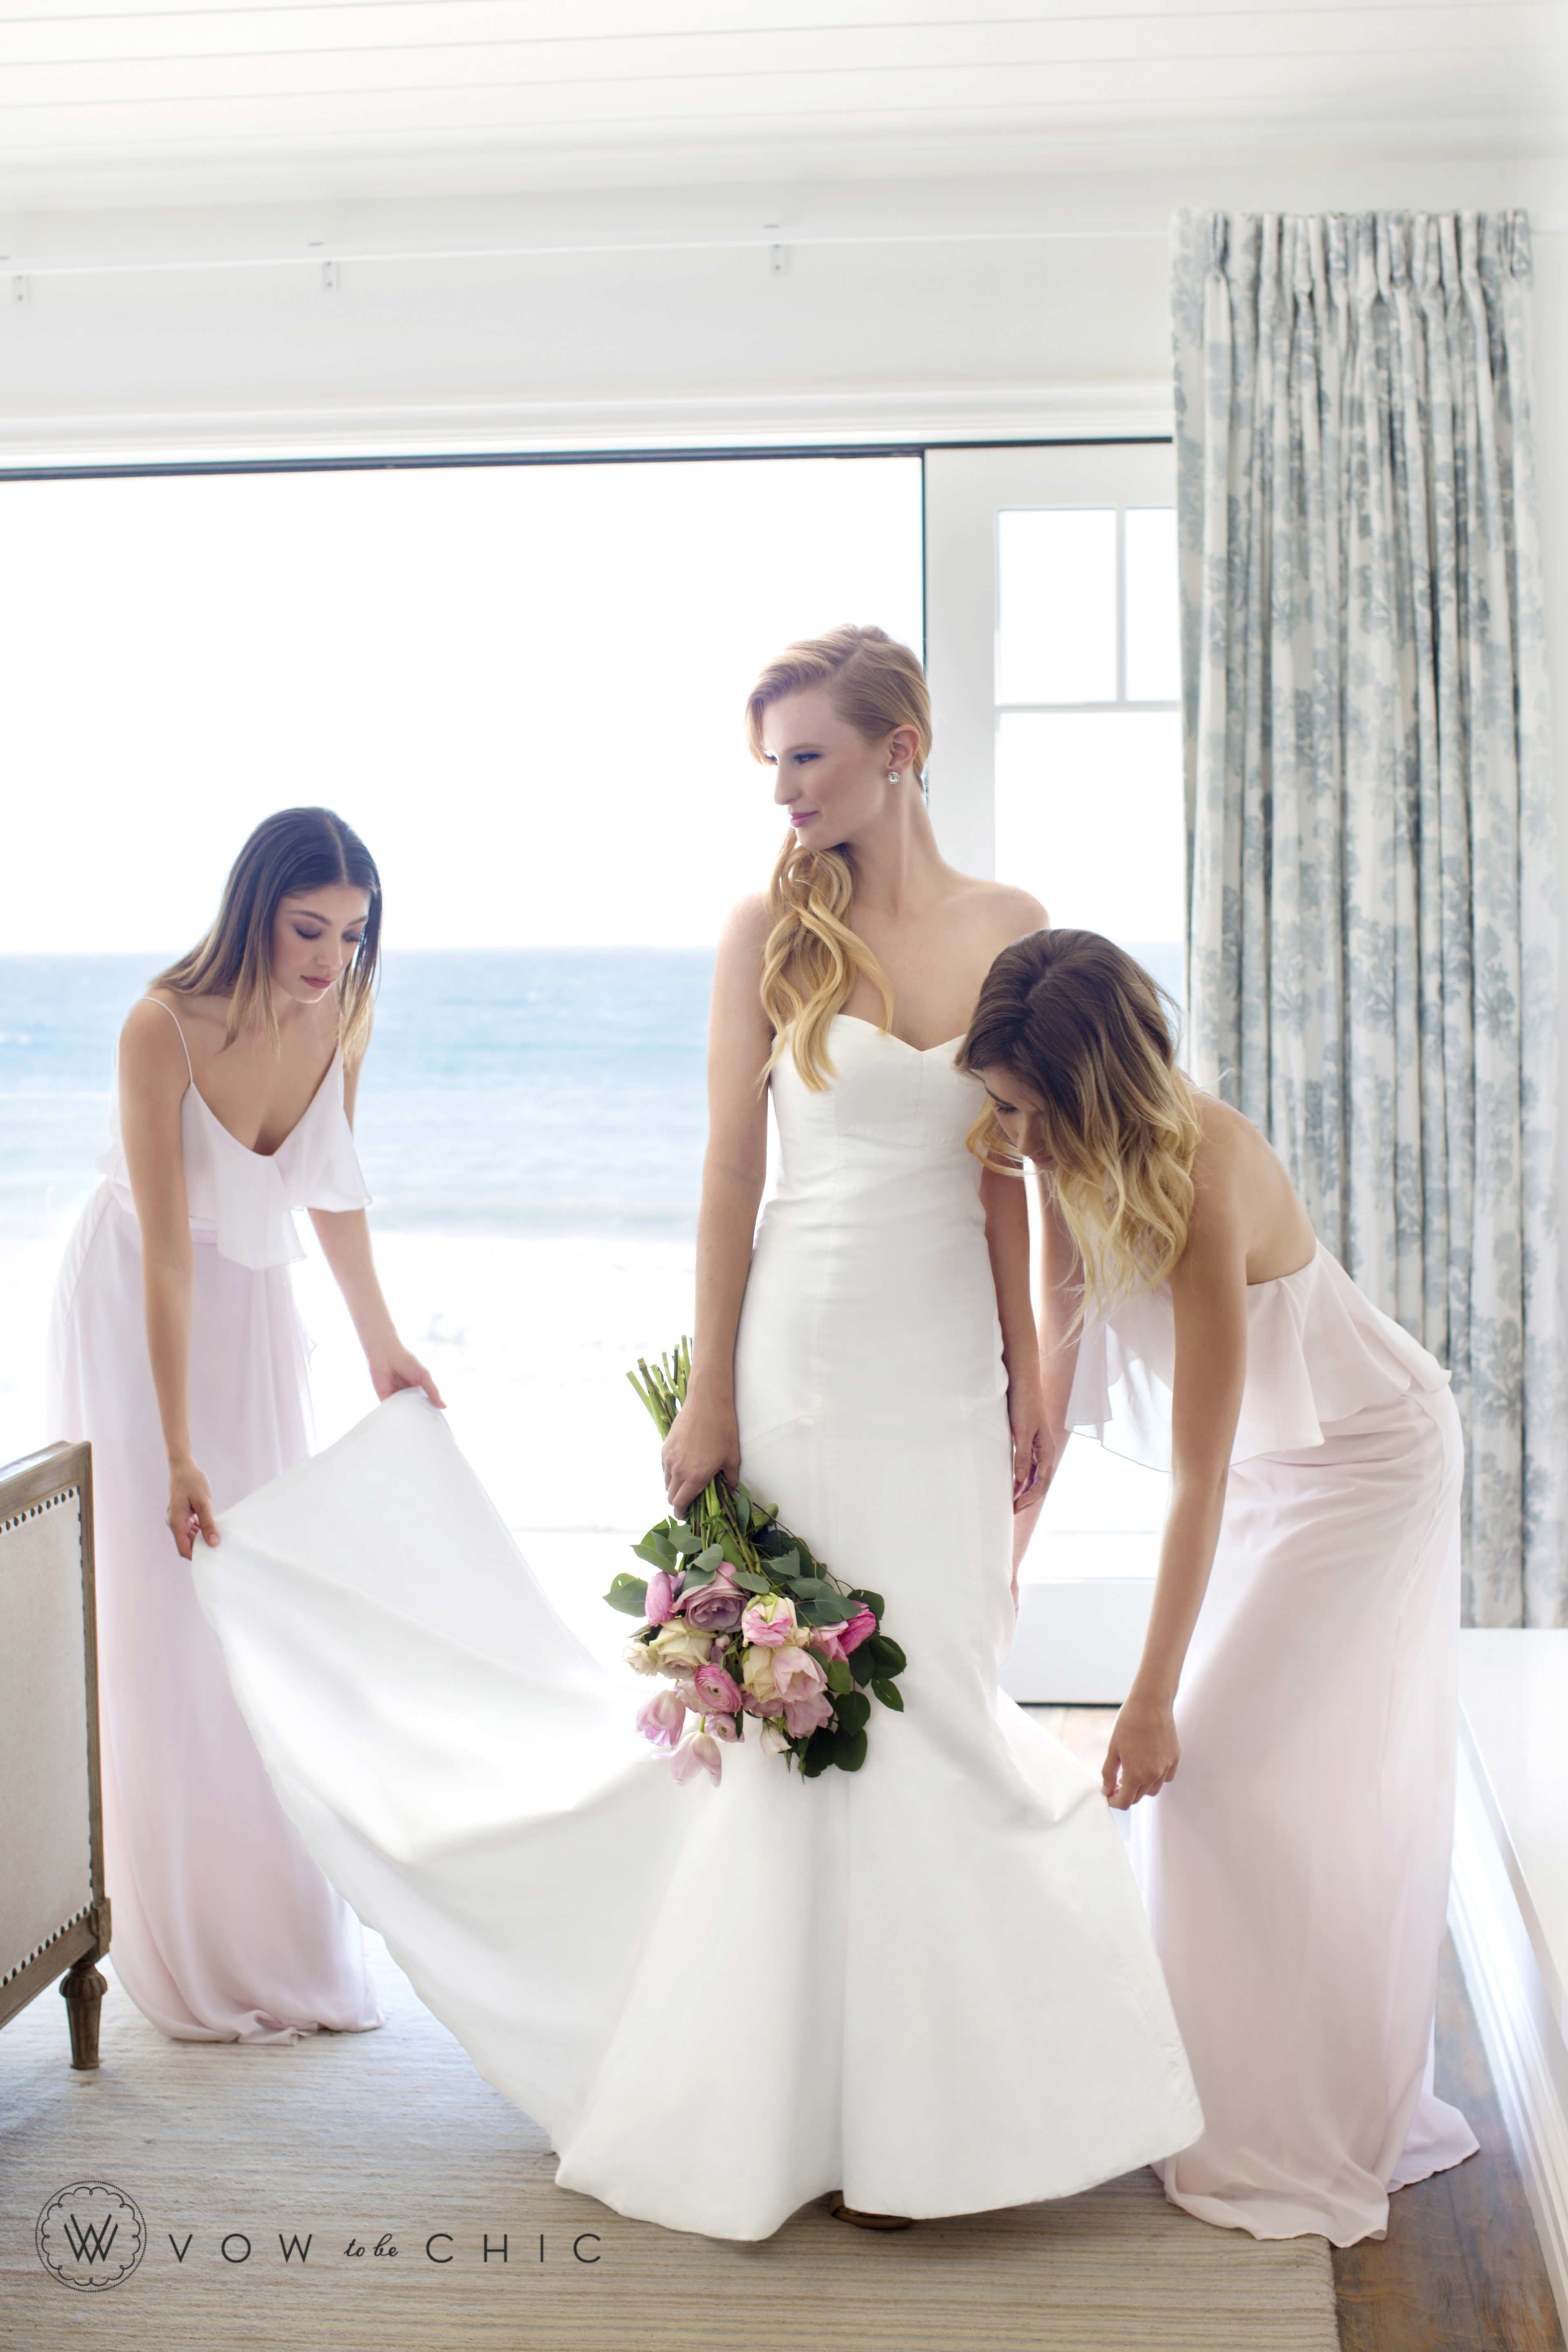 Vow to be chic has lovely bridesmaids dresses and wedding gowns vow to be chic has lovely bridesmaids dresses and wedding gowns so lovely ombrellifo Images